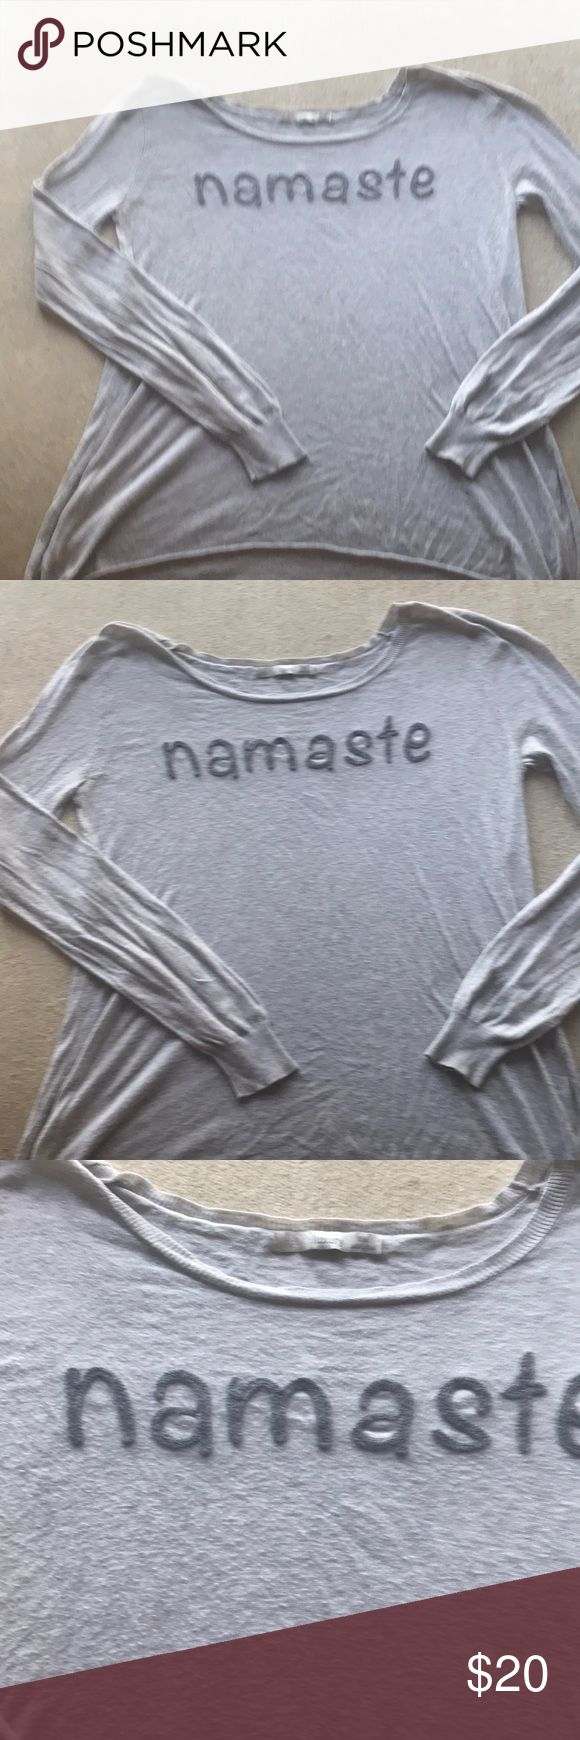 PRE-LOVED AWESOME MESSAGE SWEATER / TEE MADE BY SUBTLE LIXURY THIS THIN  SWEATER / TEE HAS MADE ME FEEL GOOD MANY A DAYS AND REMINDED ME TO TAKE IT EASY! Namaste is embroidered in a darker gray on a heather grey background! JUST A GREAT FEEL GOOD EVERYDAY COZY PIECE AND IM CALM NOW SO I SHALL PASS IT ALONG! THERE IS SOME WEAR AND LITTLE NUBBIES BUT THE MESSAGE IS CLEAR ! SIDE SLITS Subtle Luxury Sweaters Crew & Scoop Necks